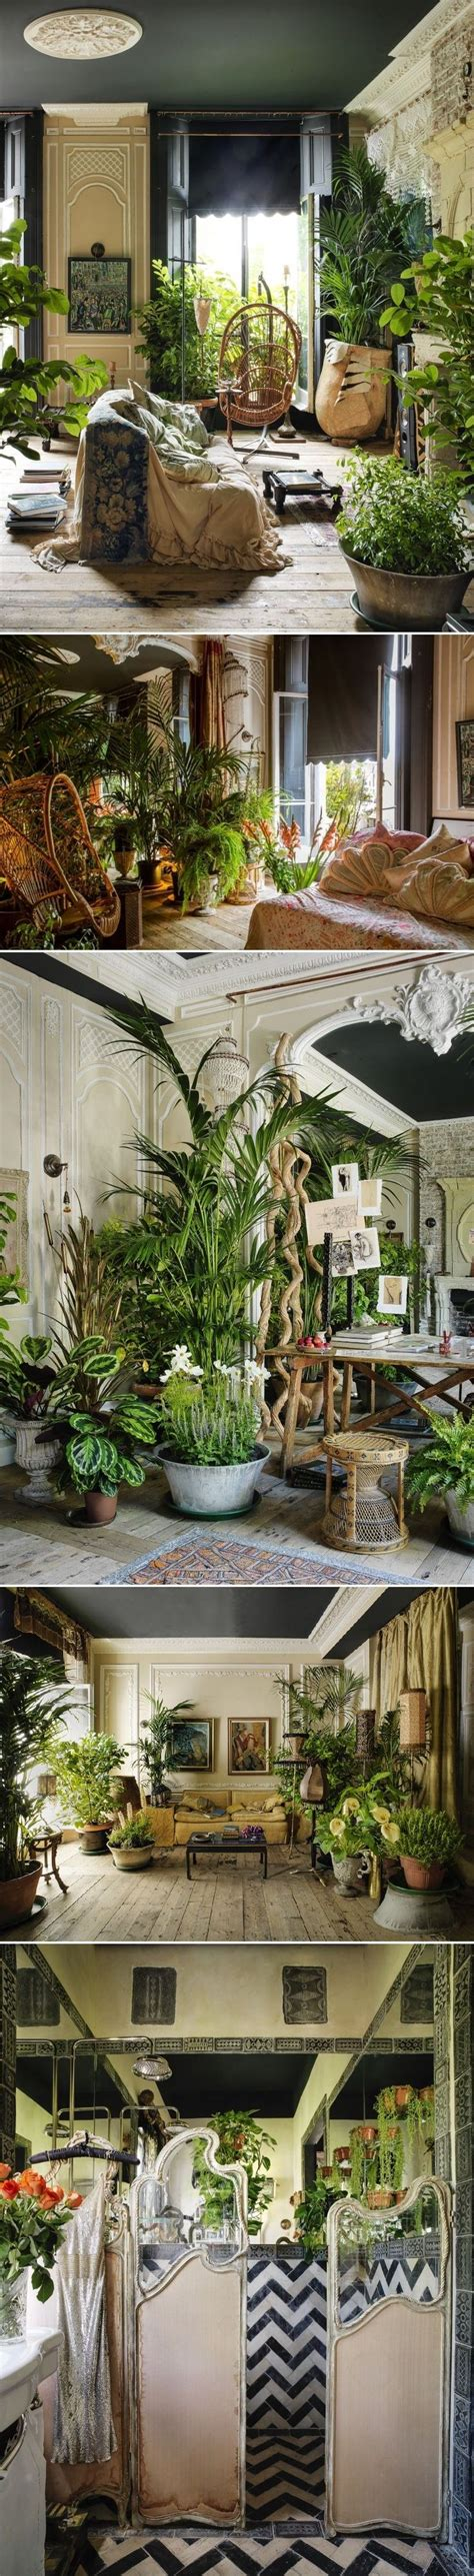 home decor locations home decorating ideasbathroom interior design home decorating ideas bathroom interior designer sera hersham loftus s bohemian plant filled